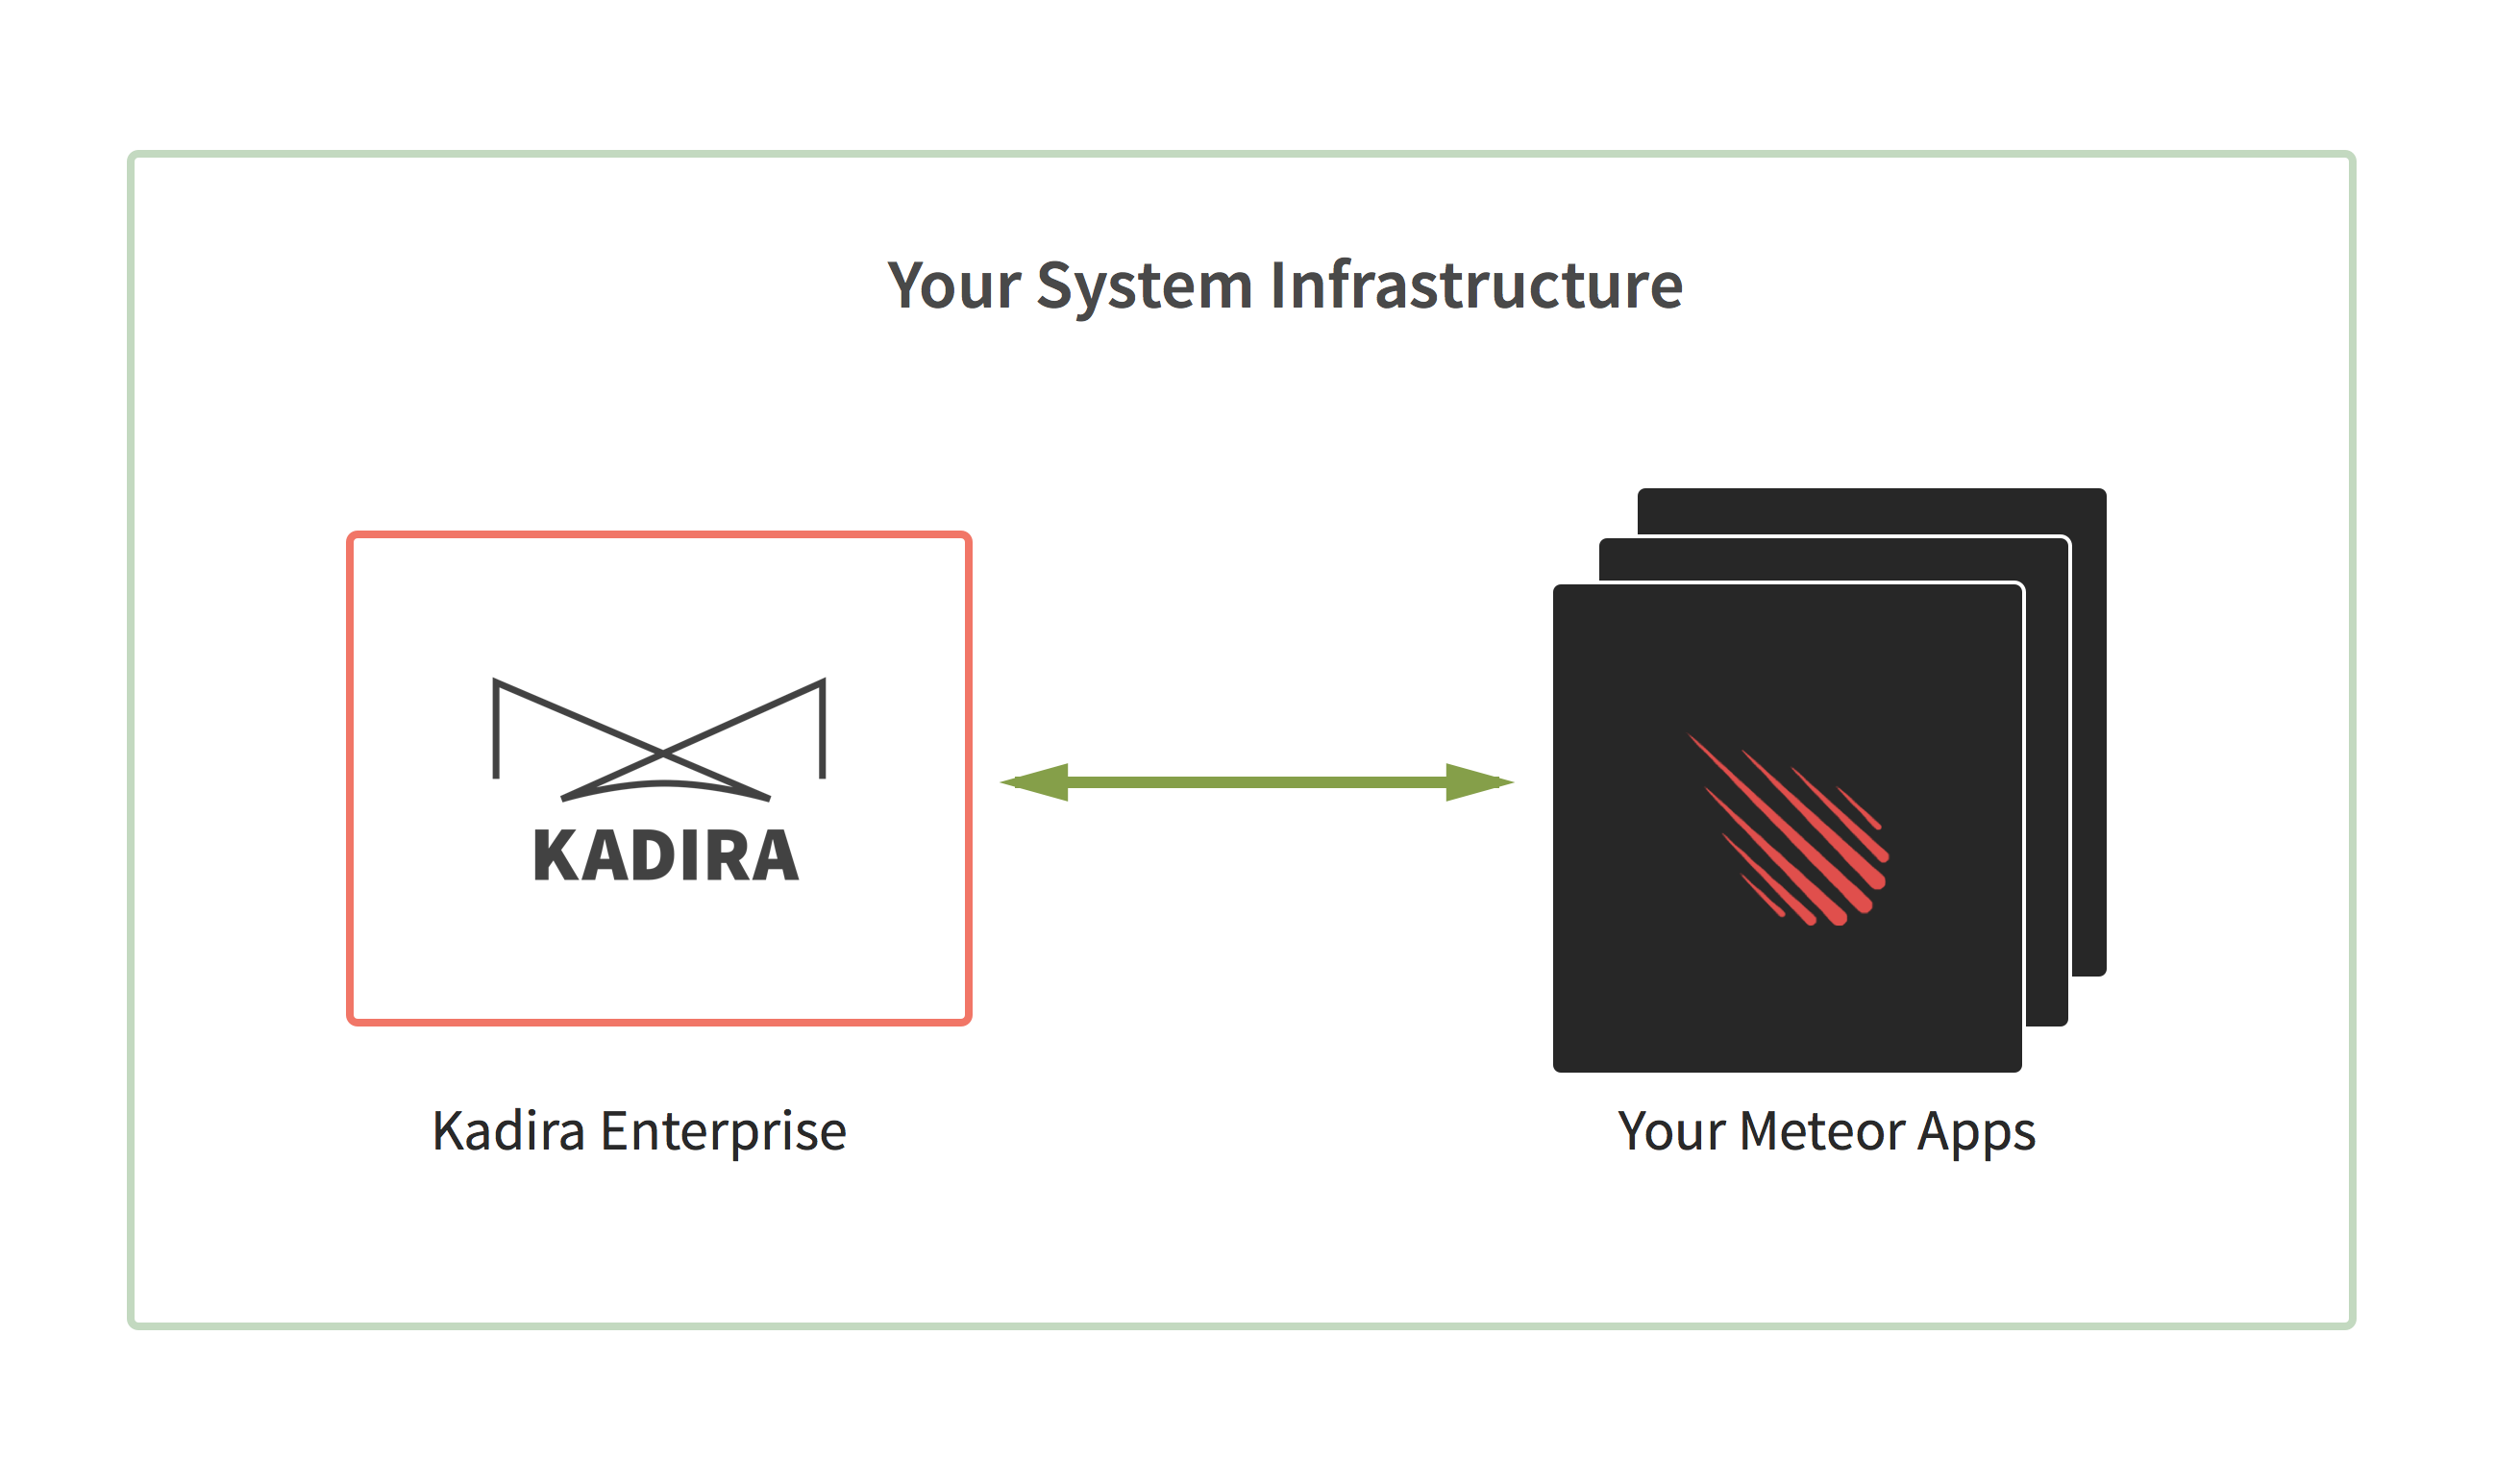 Kadira Enterprise